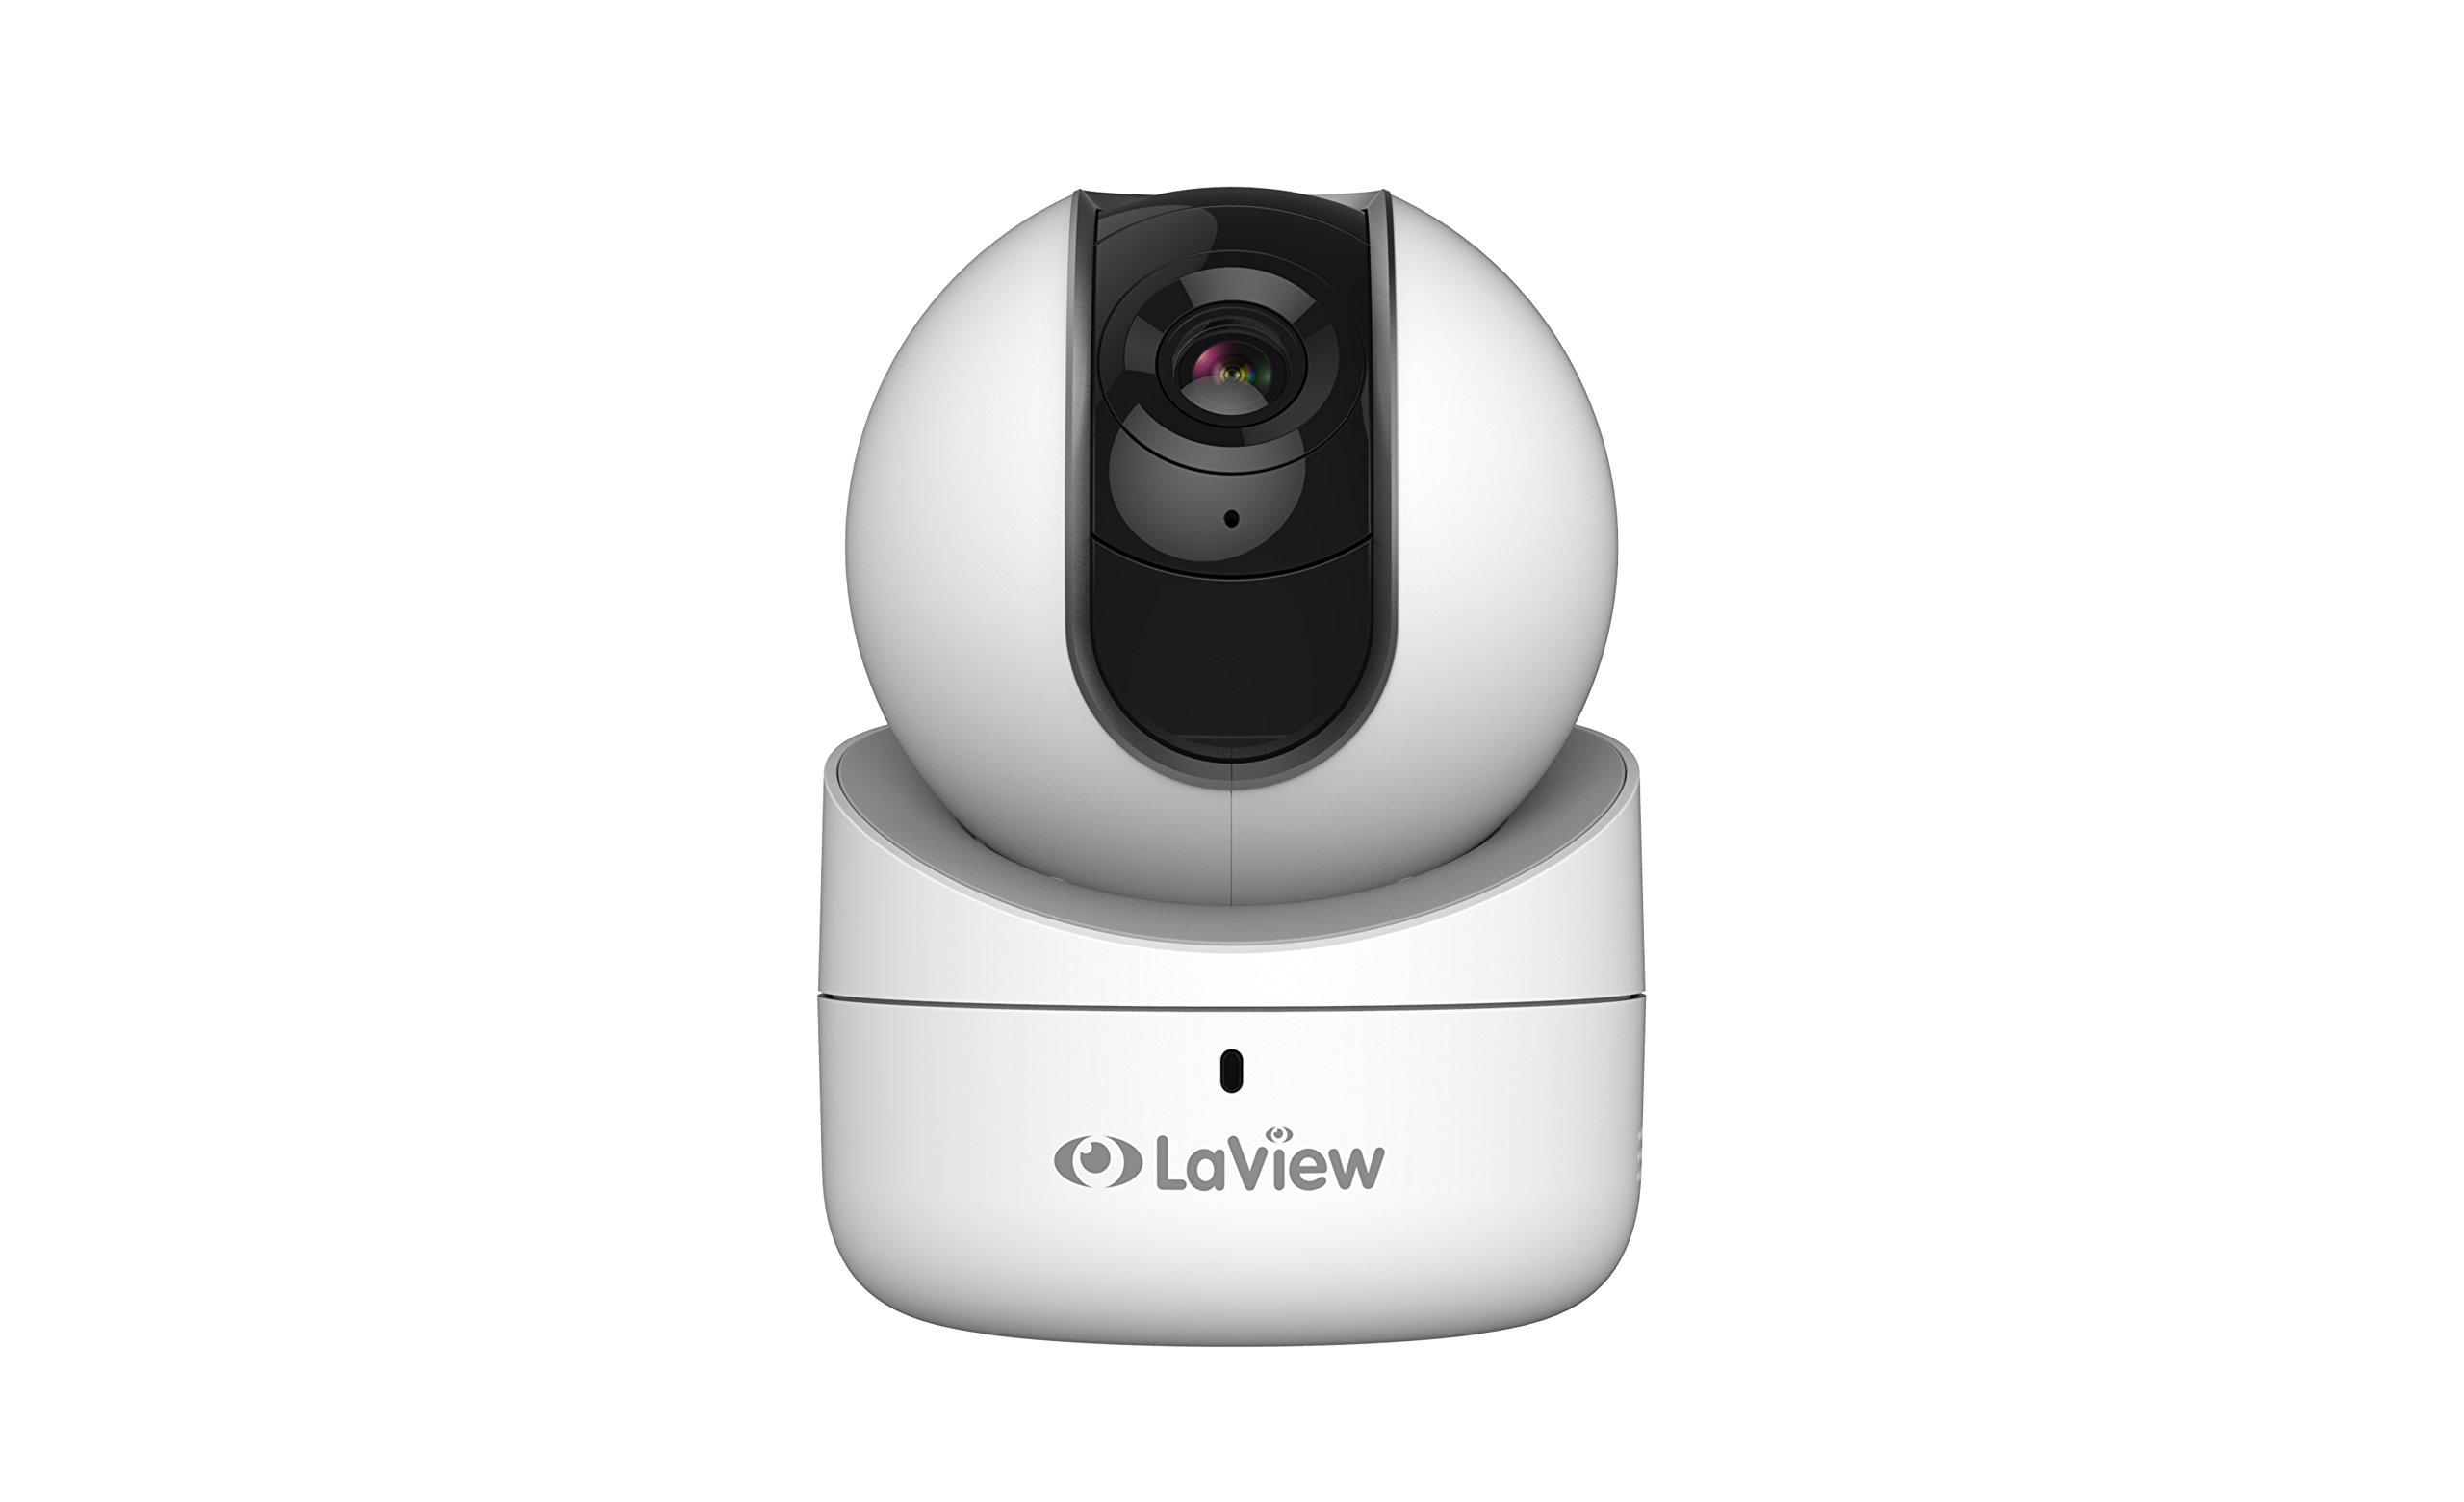 LaView 1080P Wi-Fi 360° Indoor Security Camera, Remote Pan Tilt Camera with Micro SD On-Board Storage, Two-Way Audio, Night Vision Surveillance, Motion Detection, Remote View - 16GB SD Card Included